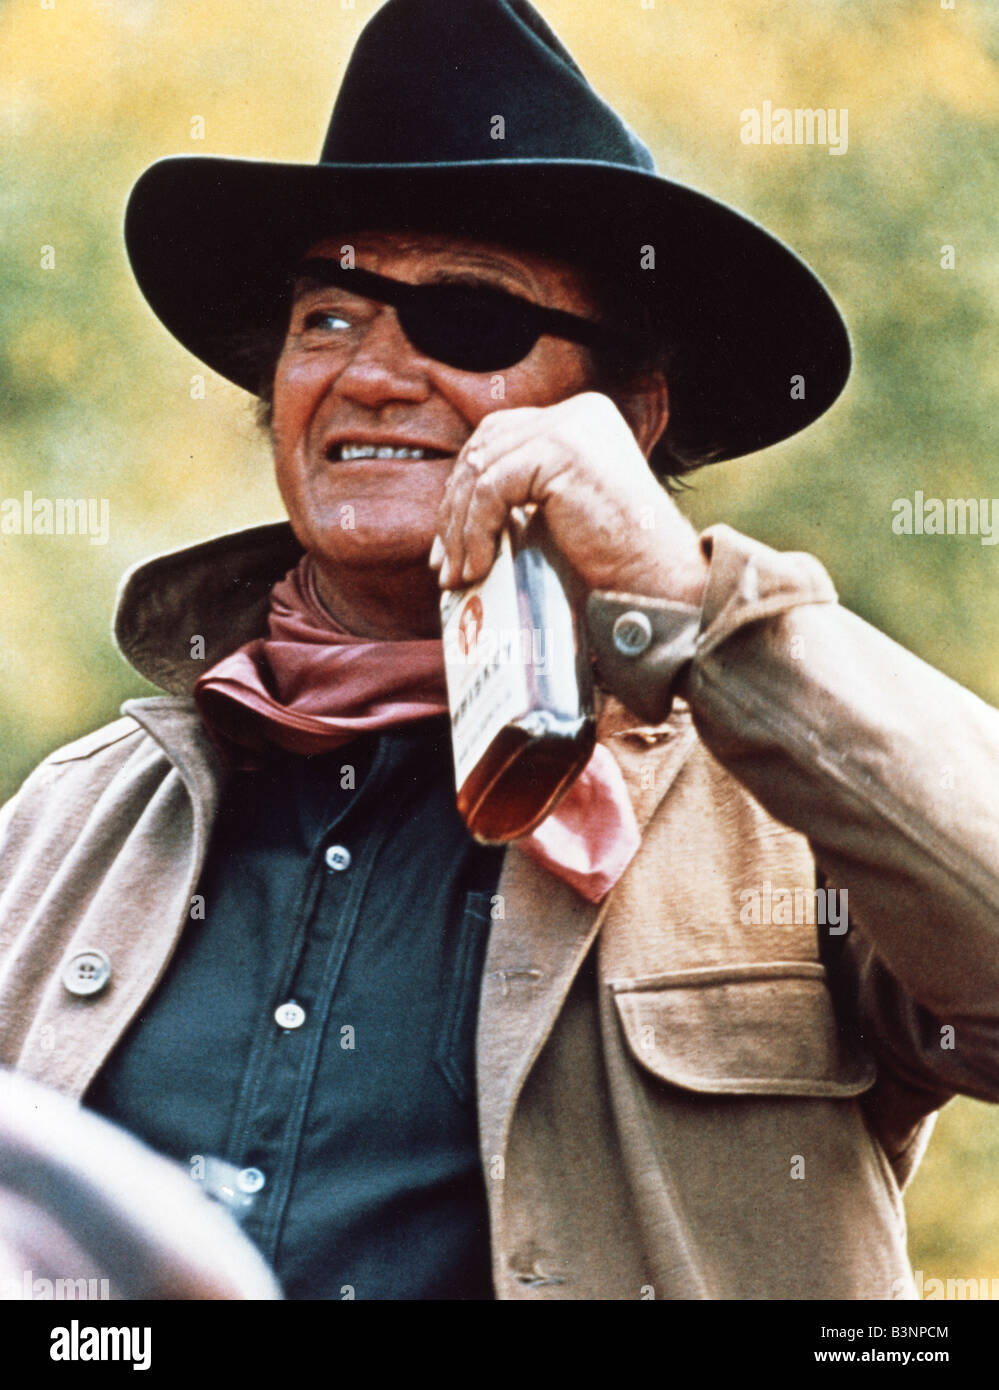 rooster cogburn 1975 universal film with john wayne stock photo royalty free image 19532932. Black Bedroom Furniture Sets. Home Design Ideas